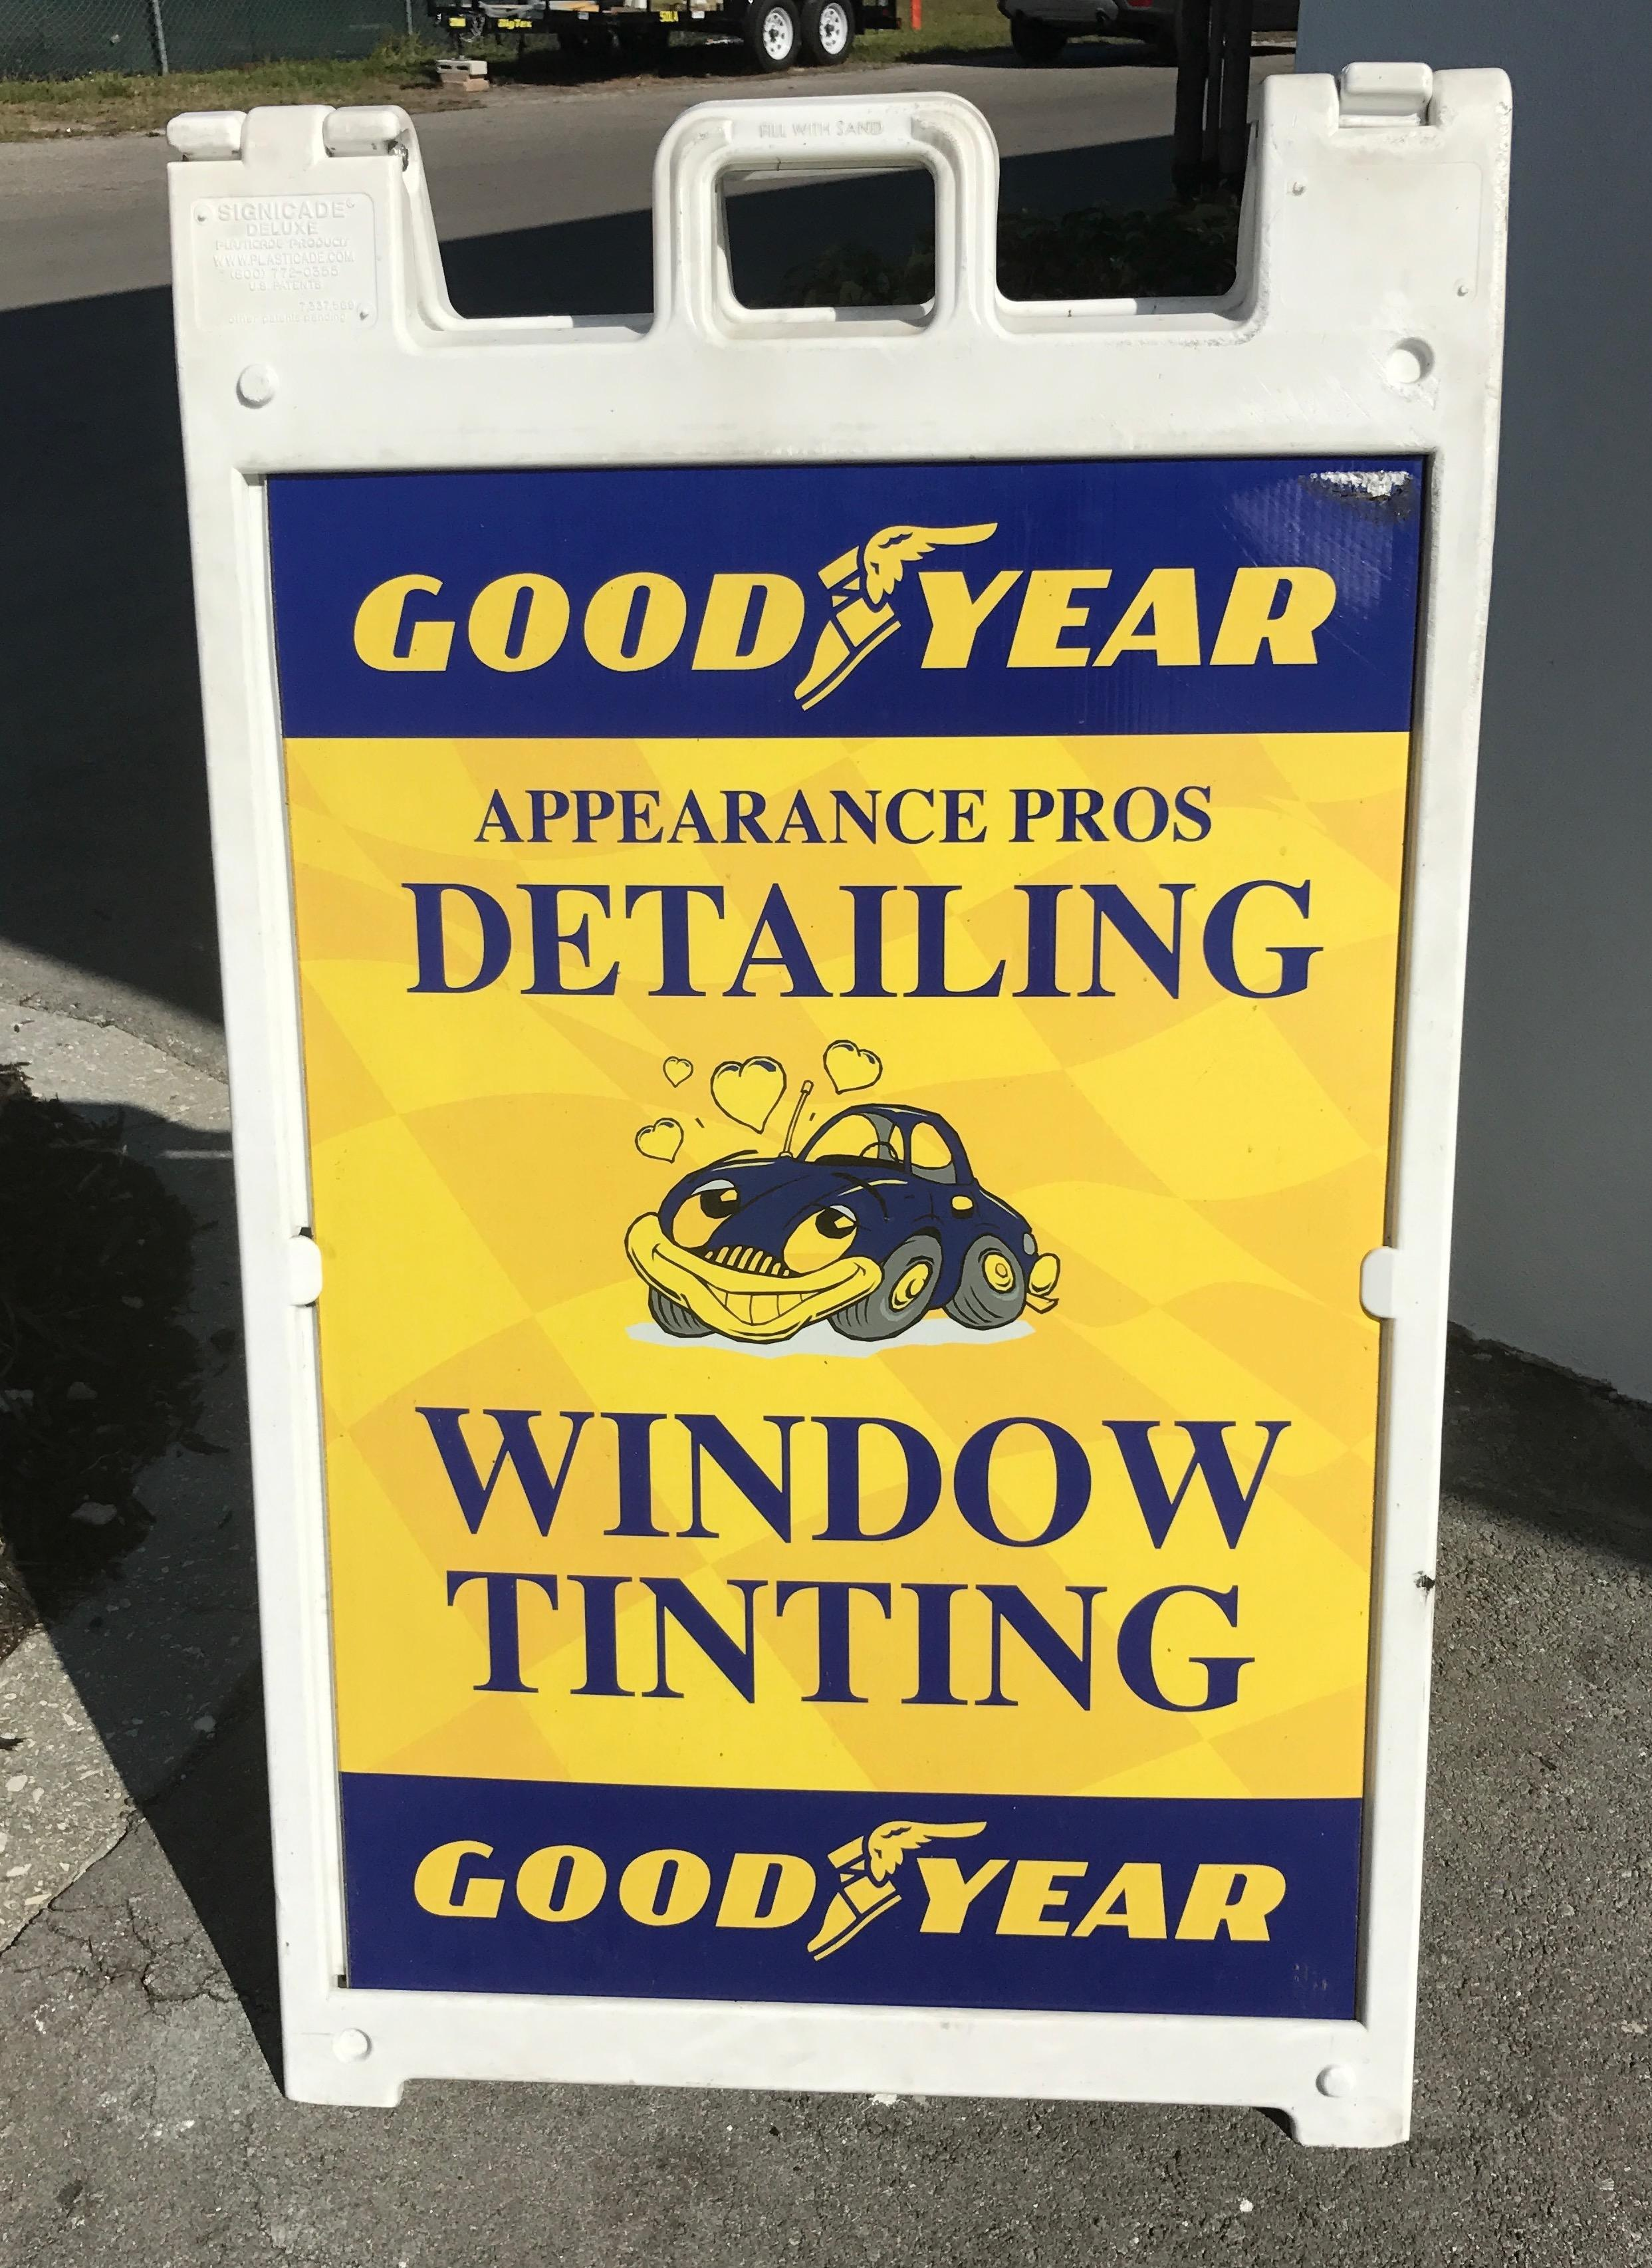 Collier Goodyear Car Care Center image 4